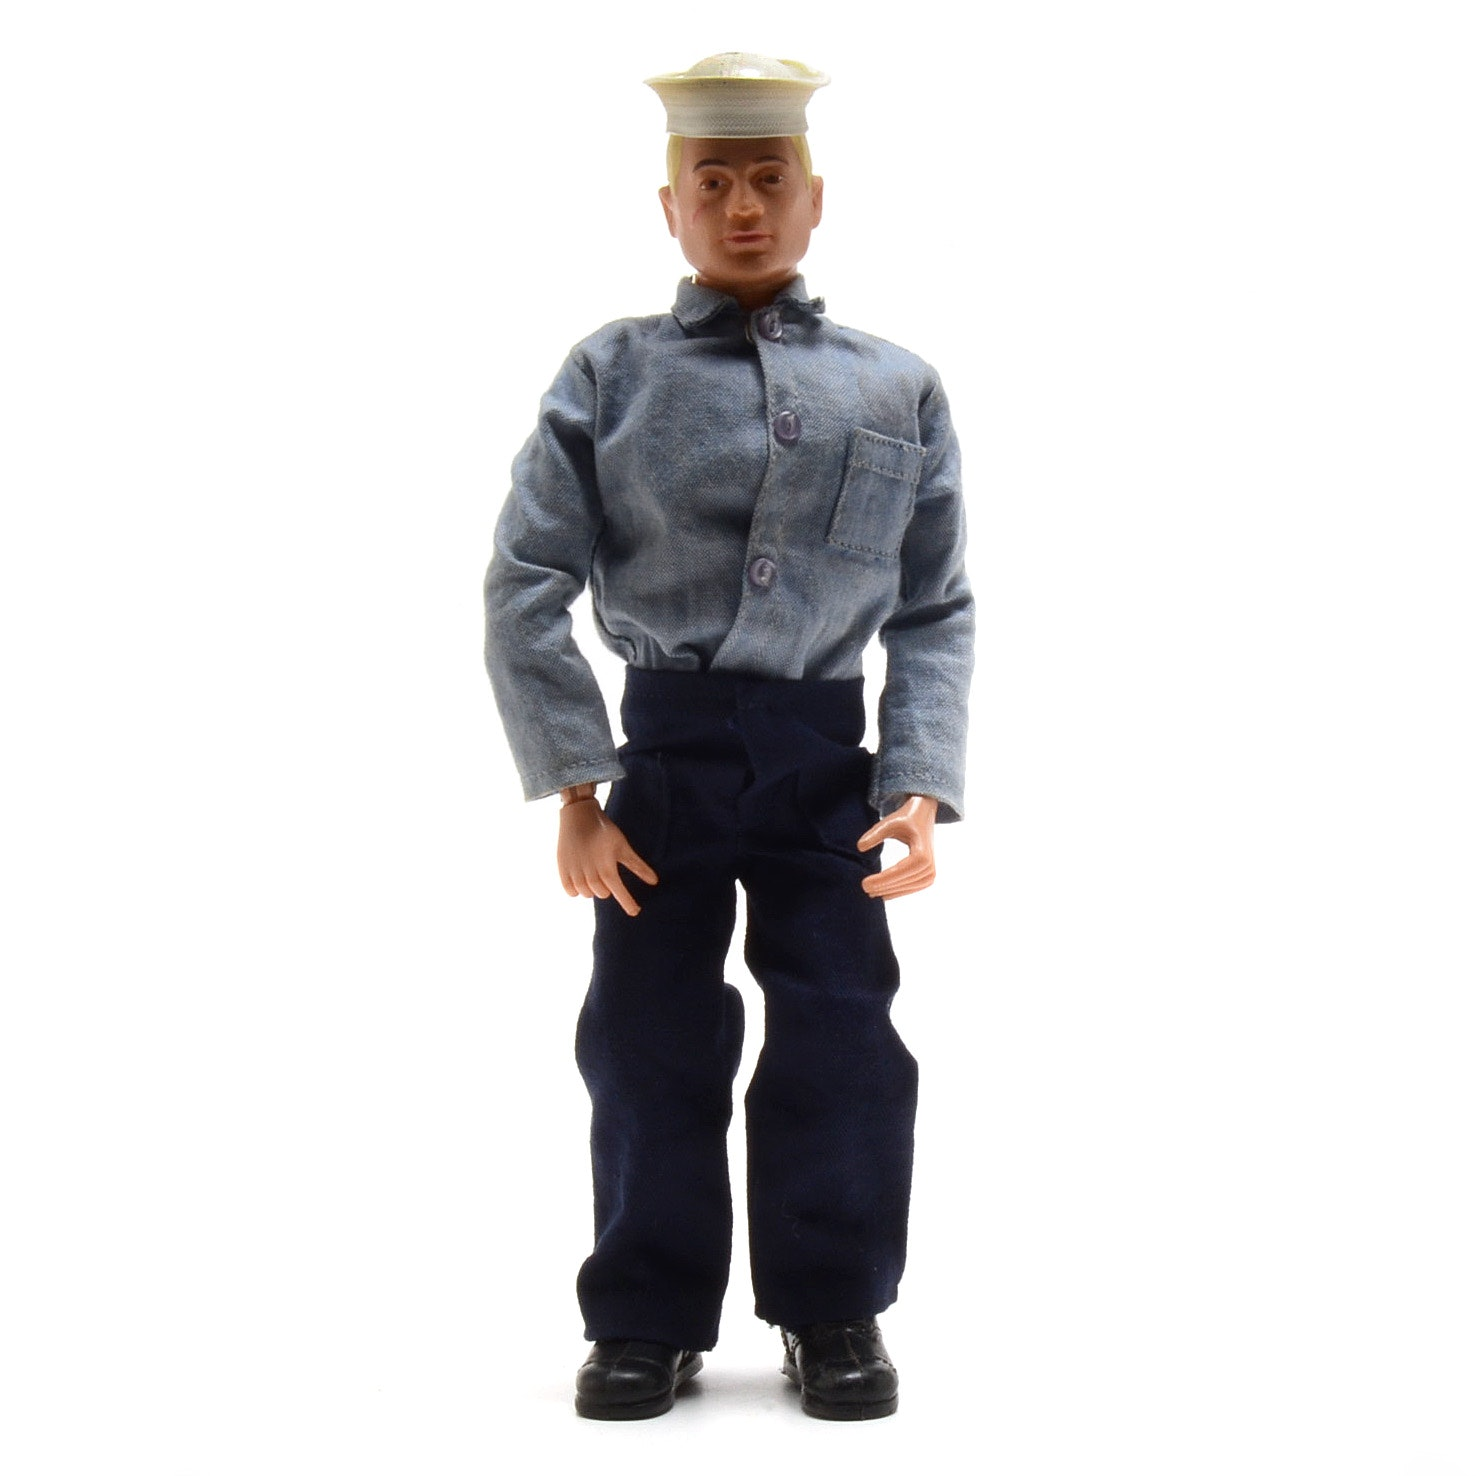 """Vintage 1970s GI Joe """"Action Sailor"""" Original with Box and Inserts"""